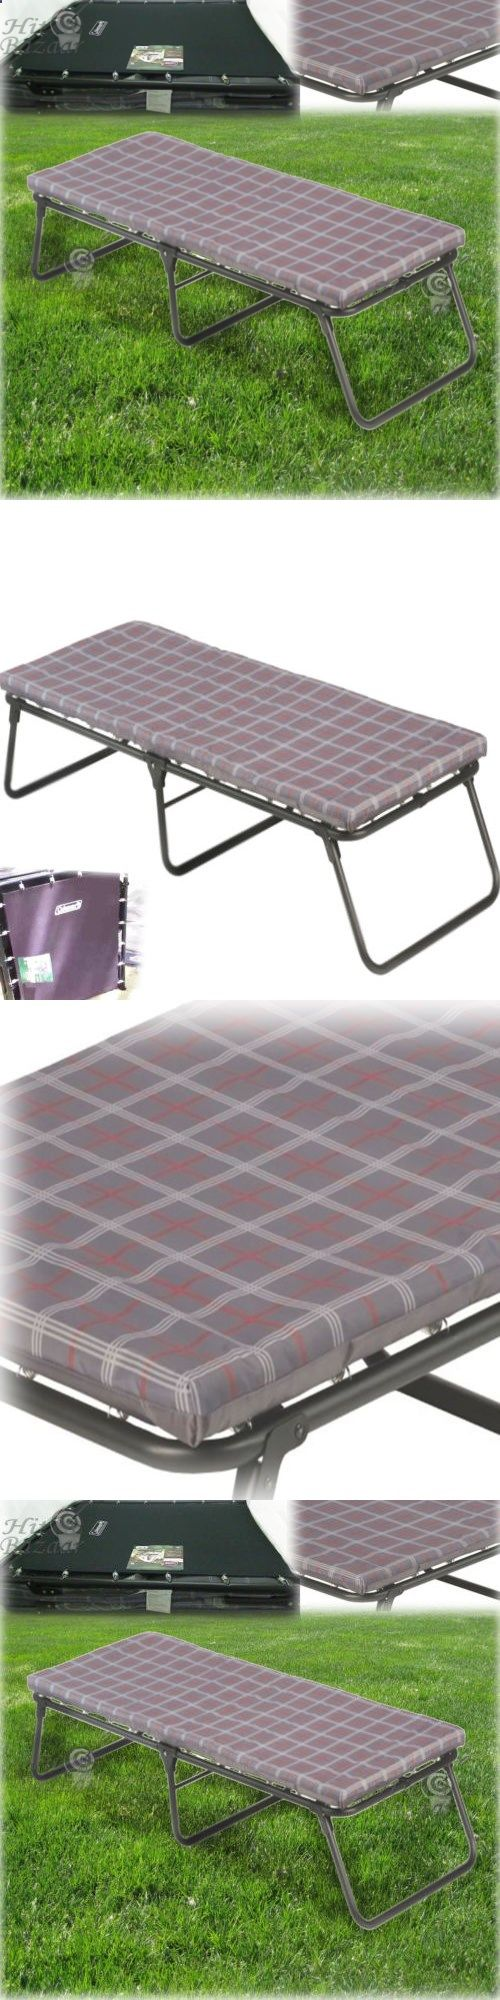 Camping Sleeping Pad Cots 87099 Cot Folding Bed Portable Outdoor Foam Mattress